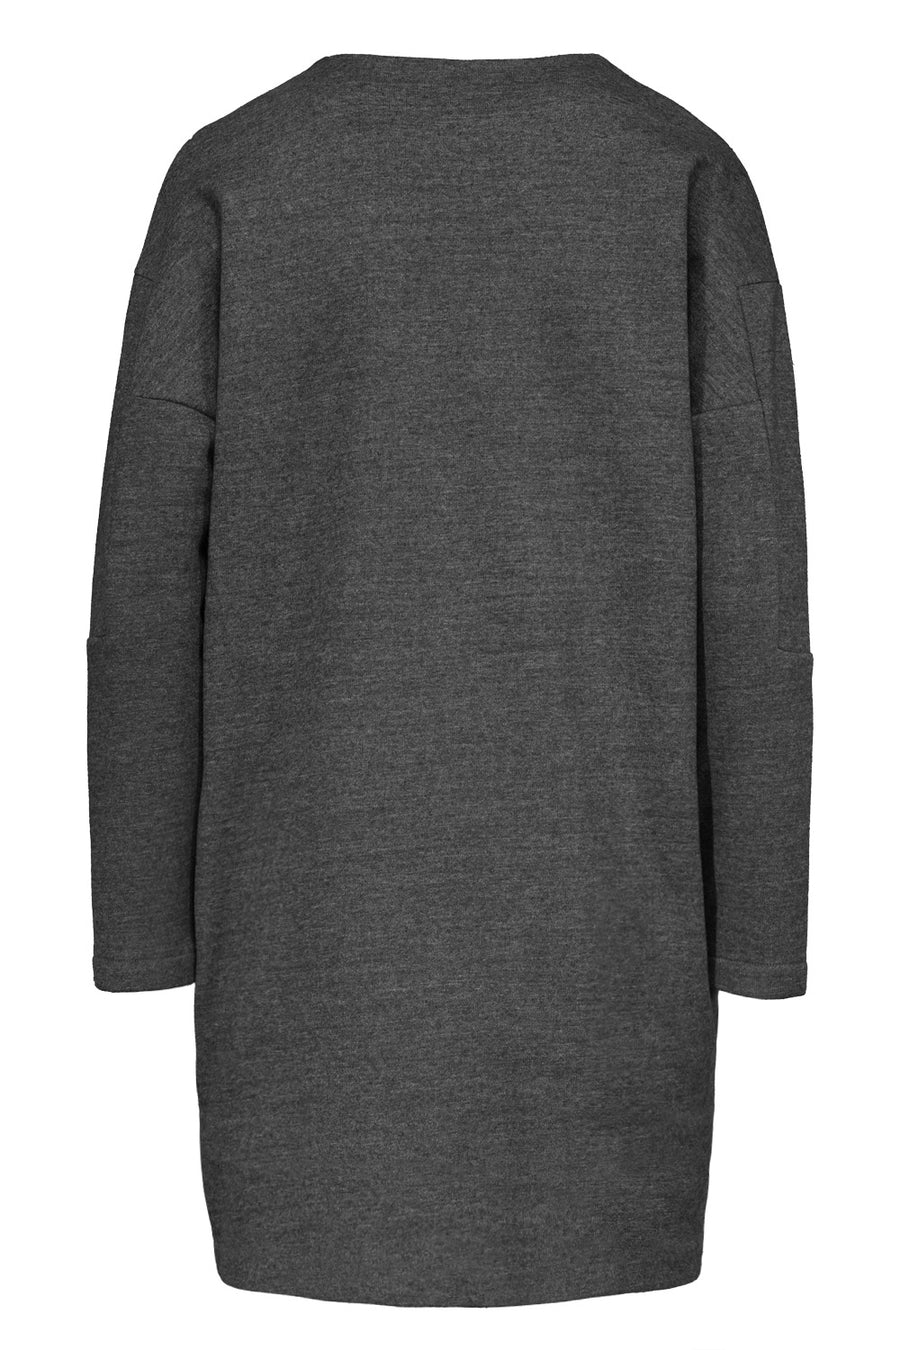 Amari Dress Recycled Fleece